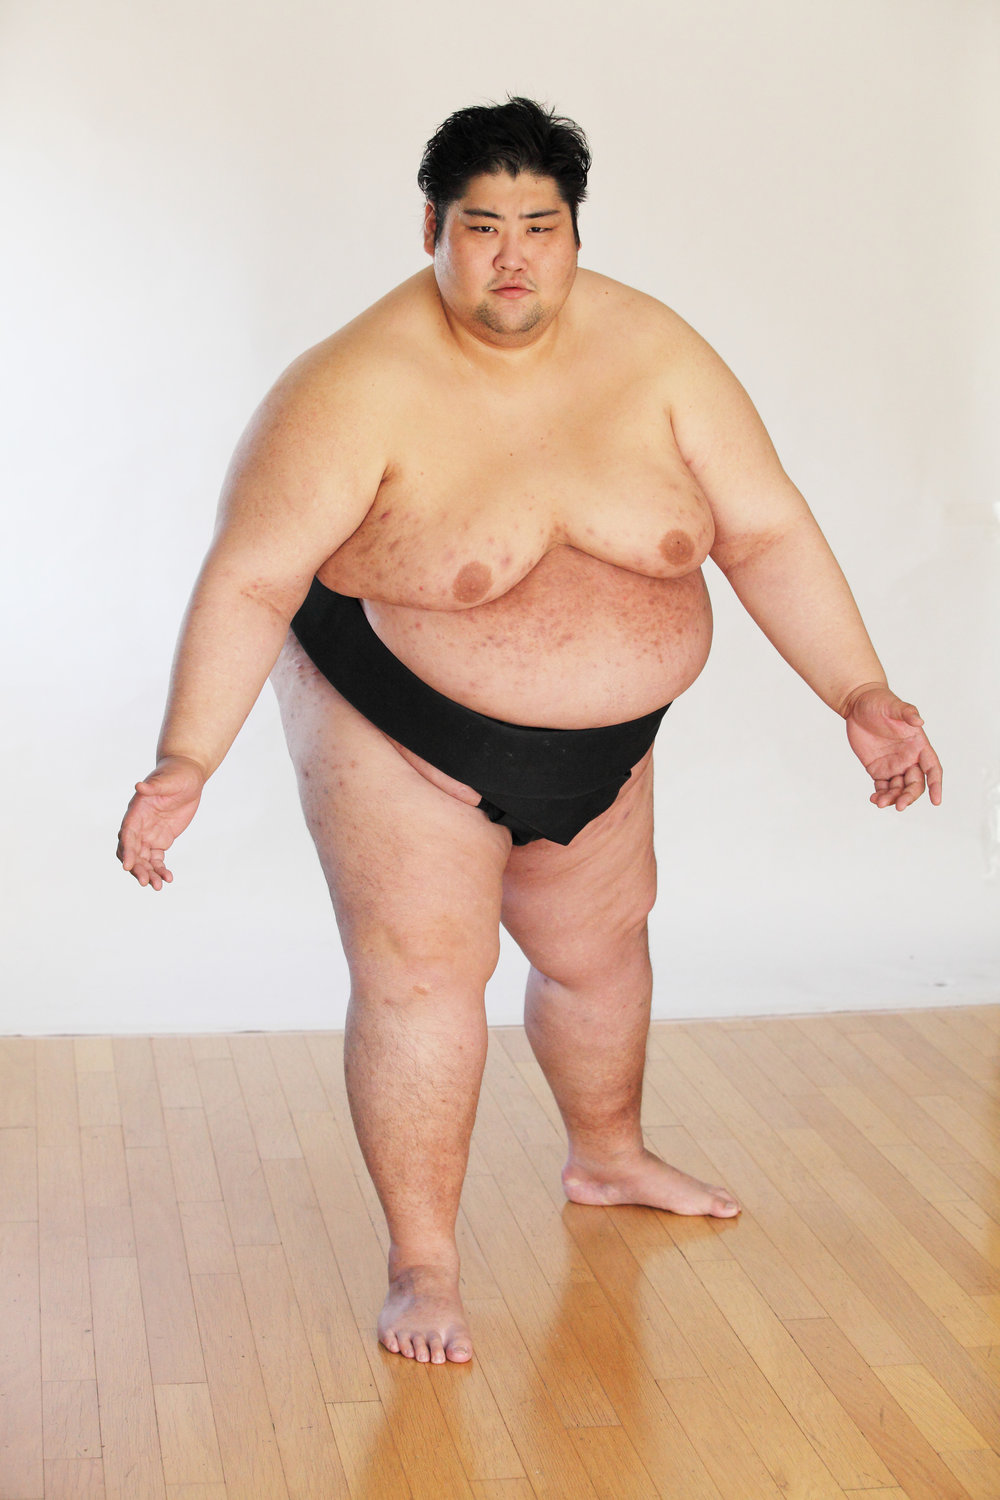 YAMA  HEIGHT: 6'4  WEIGHT: 600LBS  TWO TIME WORLD SUMO CHAMPION. HEAVIEST JAPANESE HUMAN IN RECORDED HISTORY.